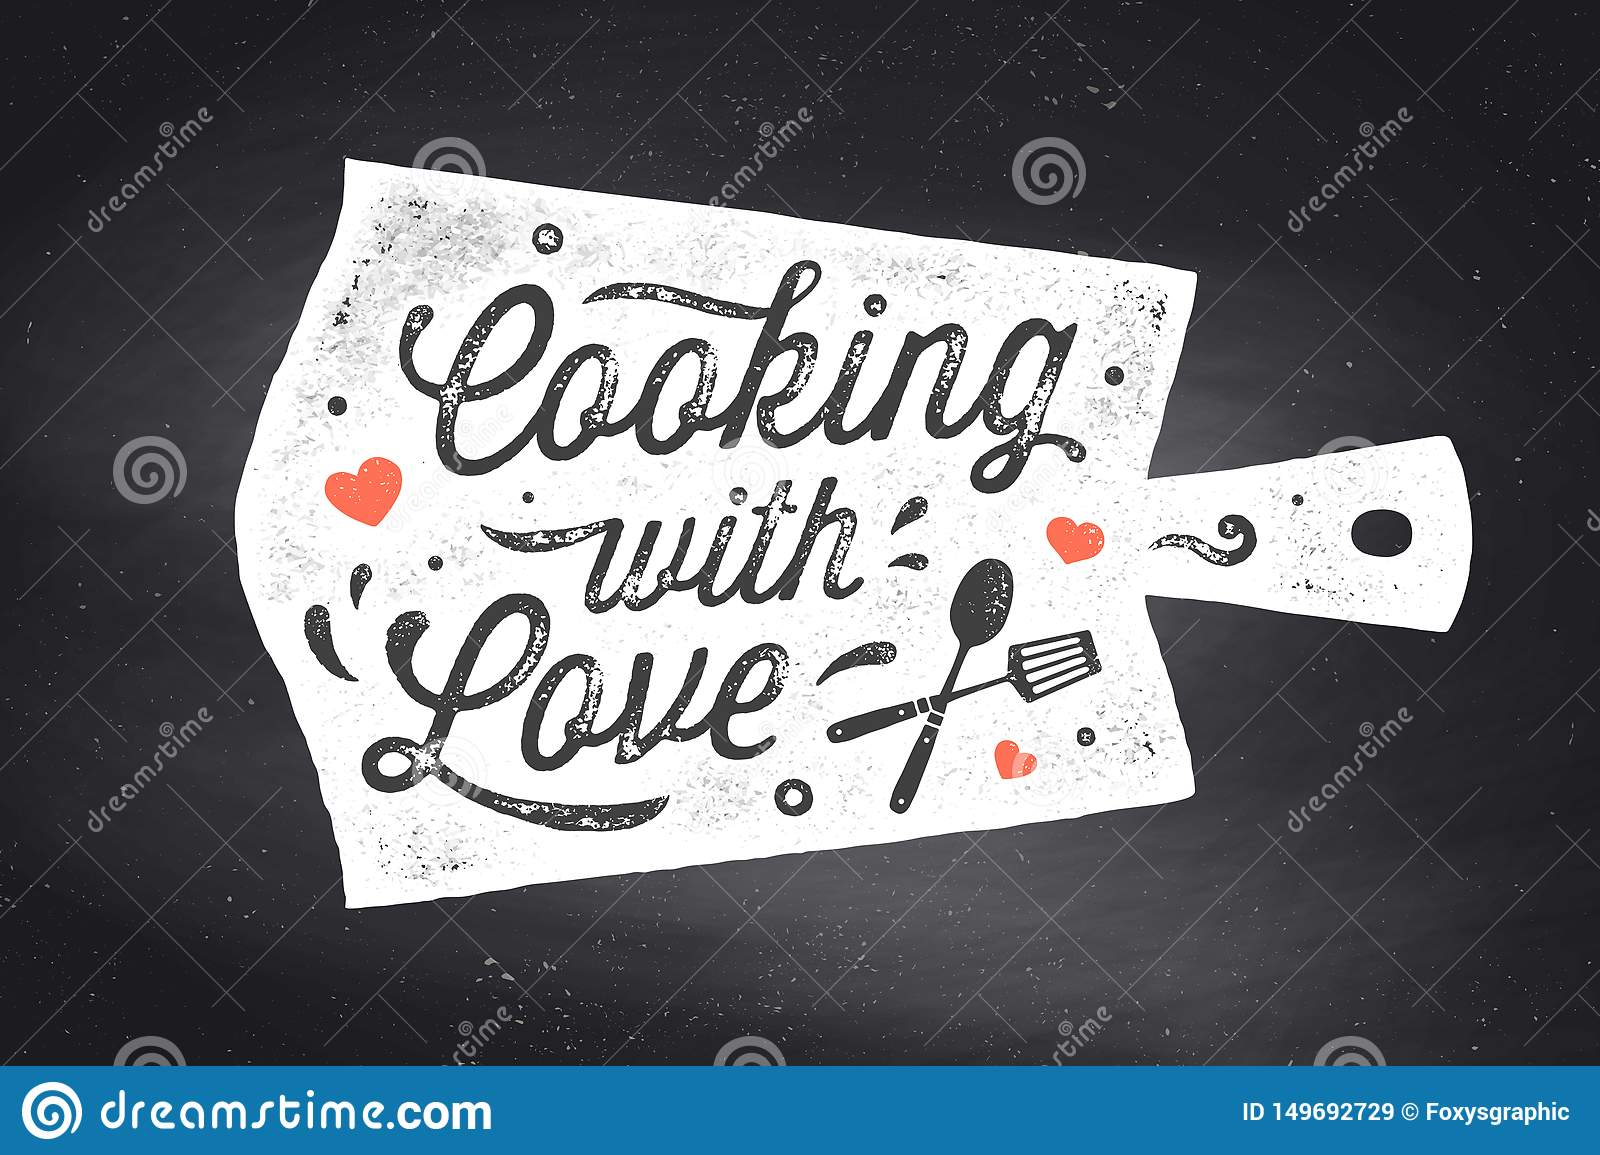 Cooking With Love Kitchen Poster Kitchen Wall Decor Sign Quote Stock Vector Illustration Of Lettering Board 149692729